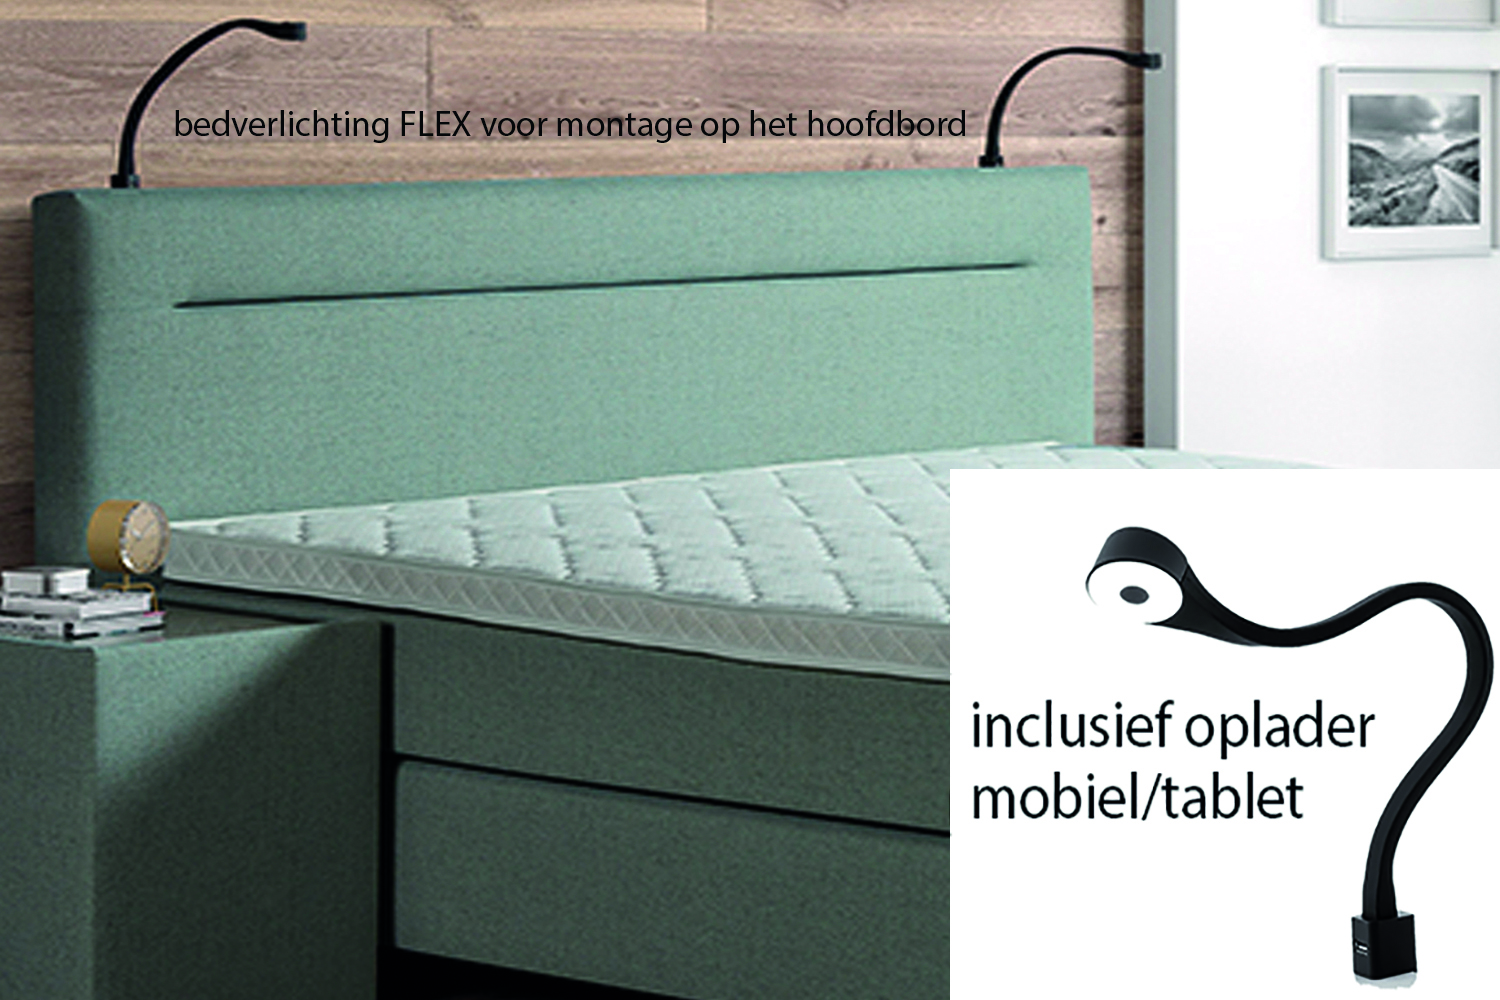 Kledingkast Inclusief Montage Achterwand Boxspring Beautiful Boxspring Slp With